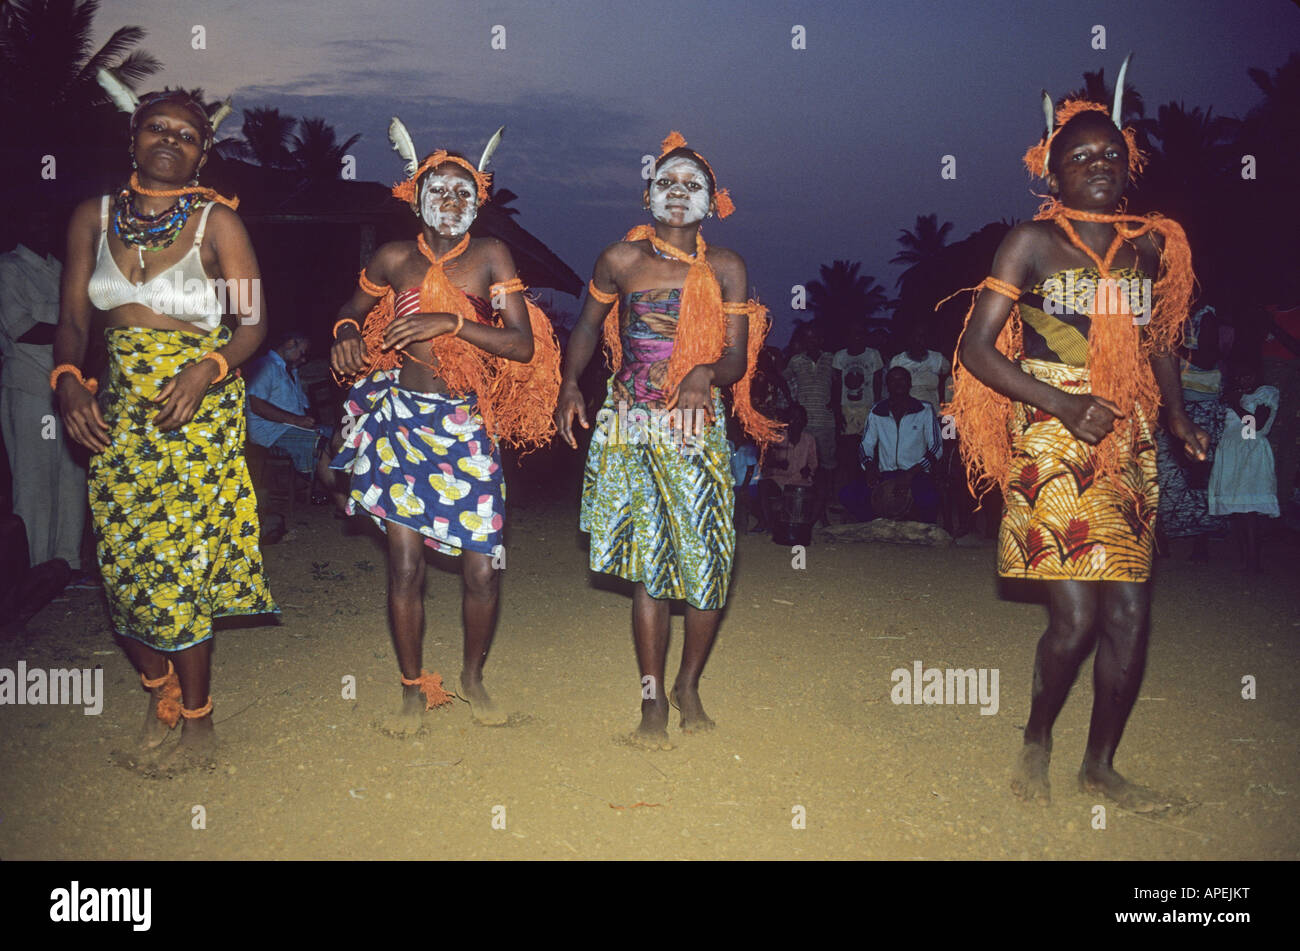 young dances in Ekpe (leopard cult) performance in remote rainforest village in Cameroon - Stock Image